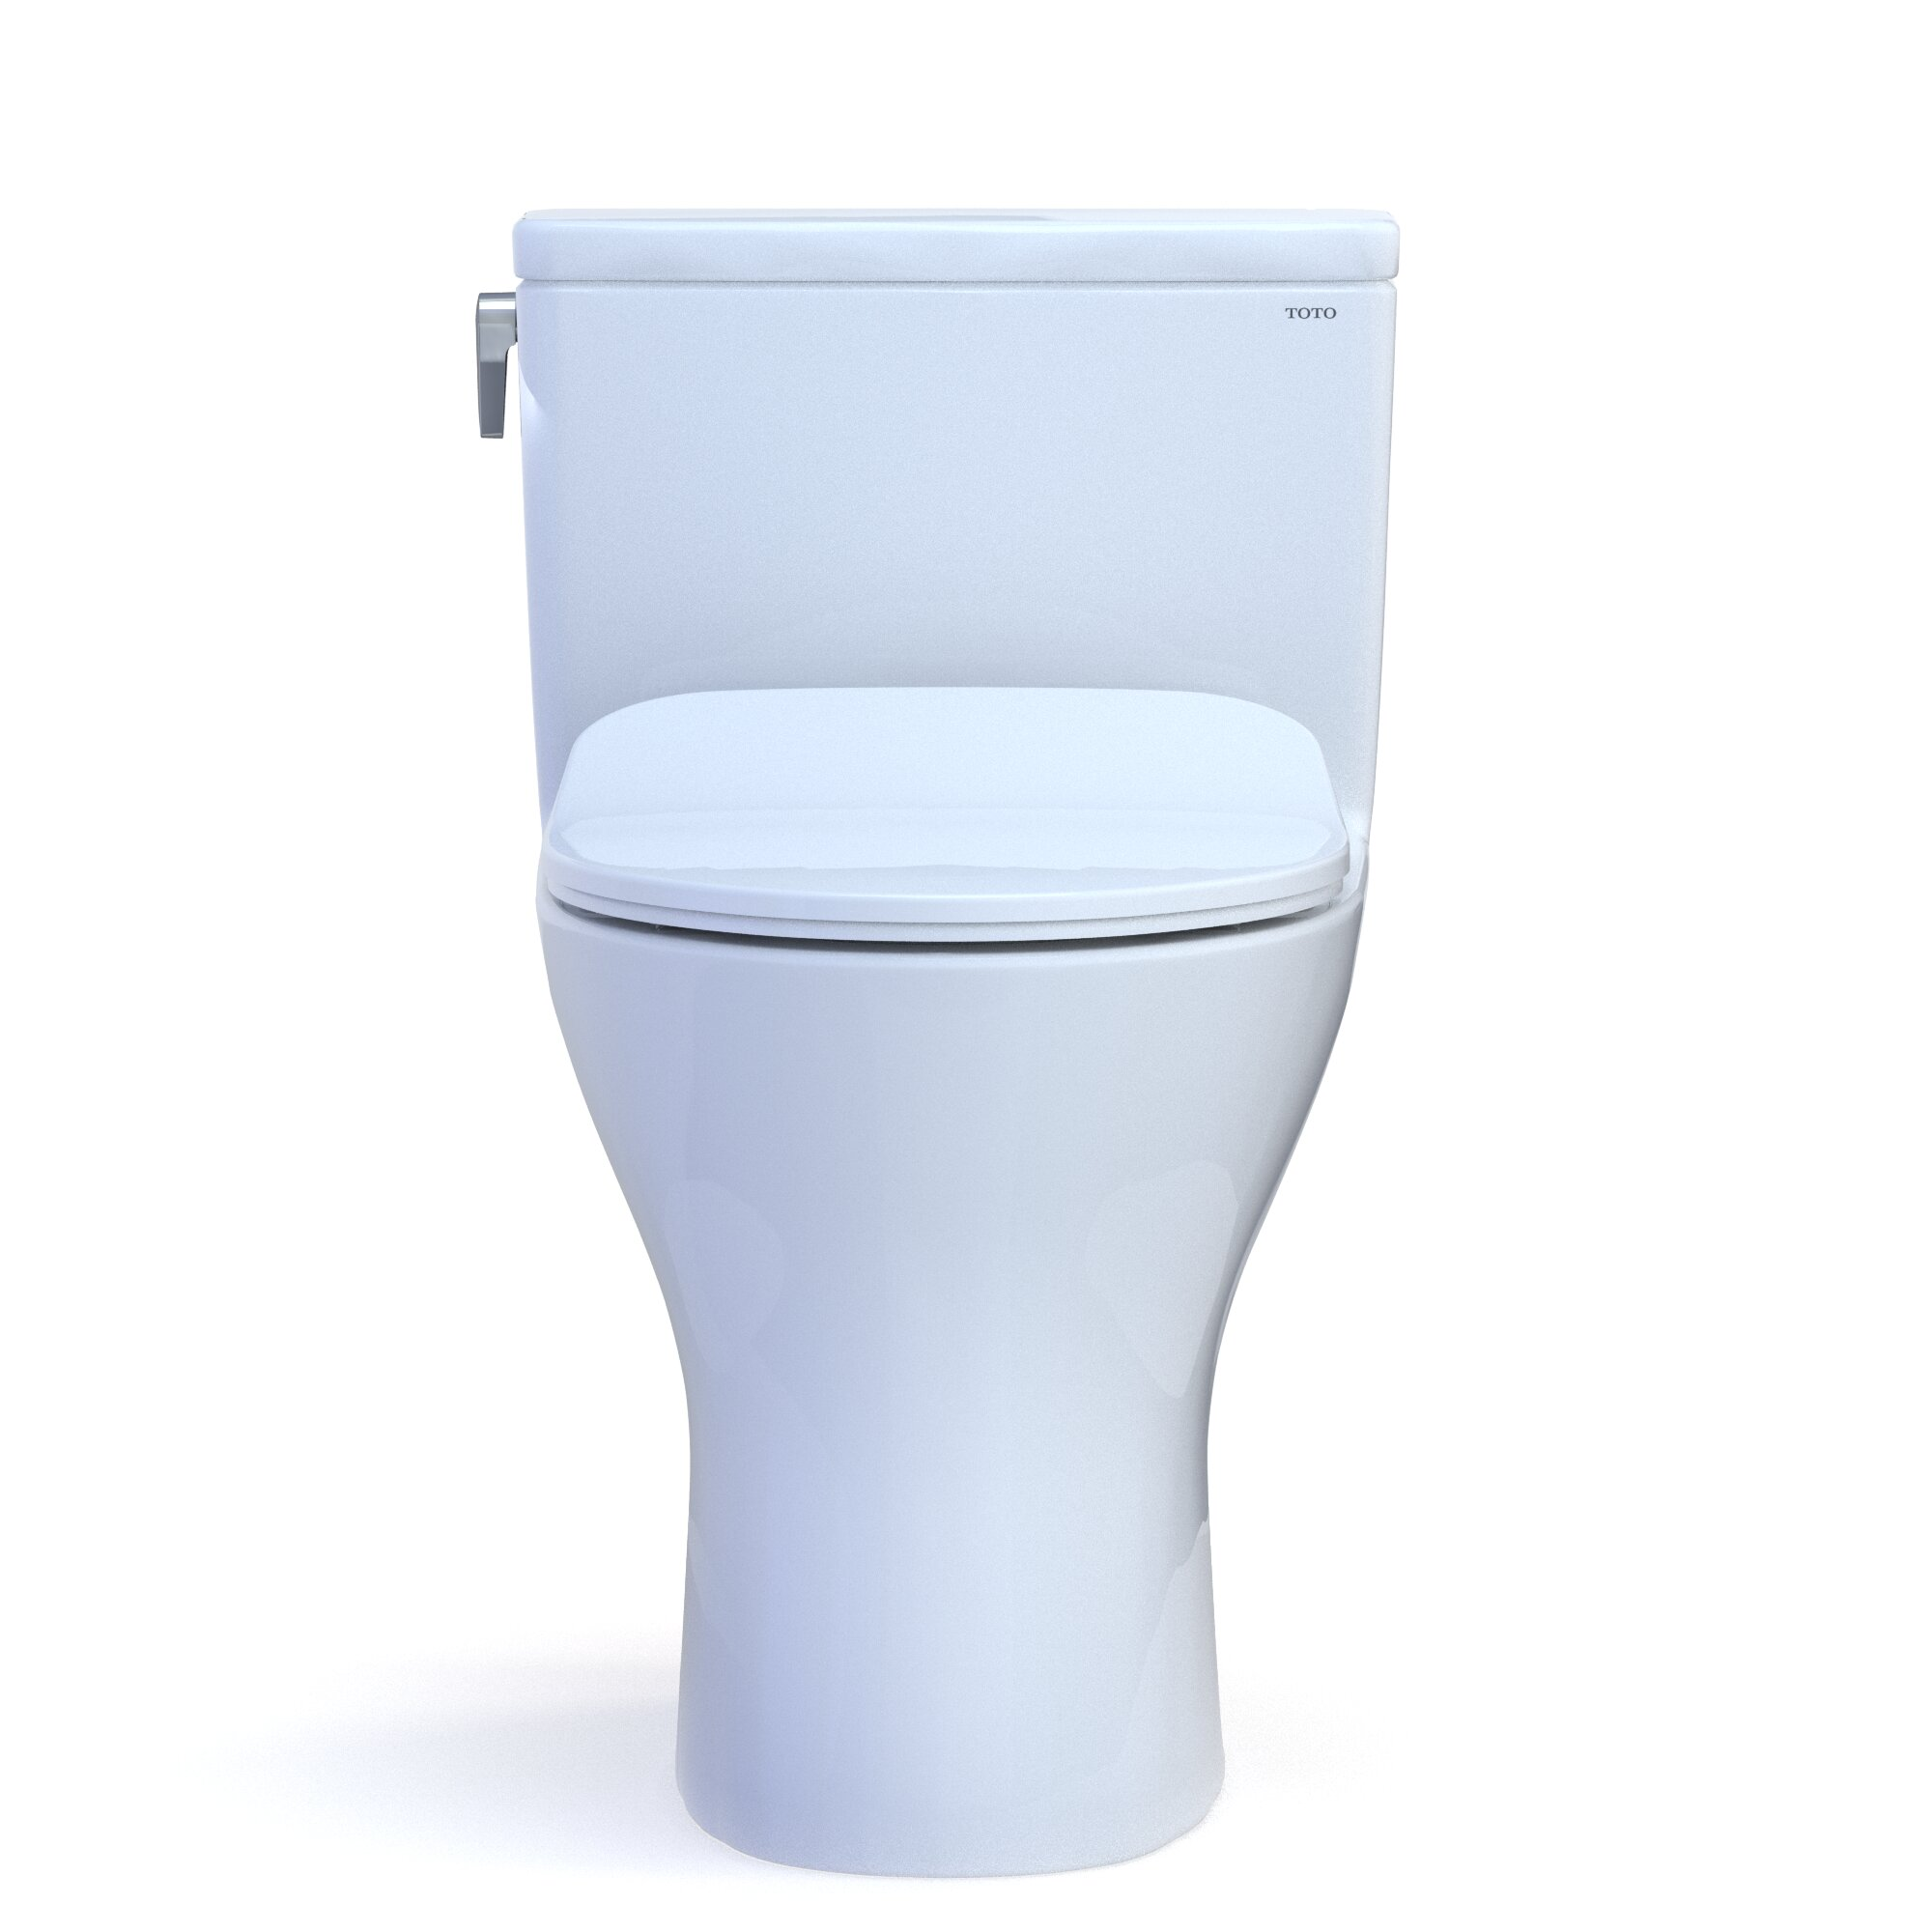 Toto Dual Flush Elongated Two Piece Toilet With Tornado Flush Seat Included Wayfair